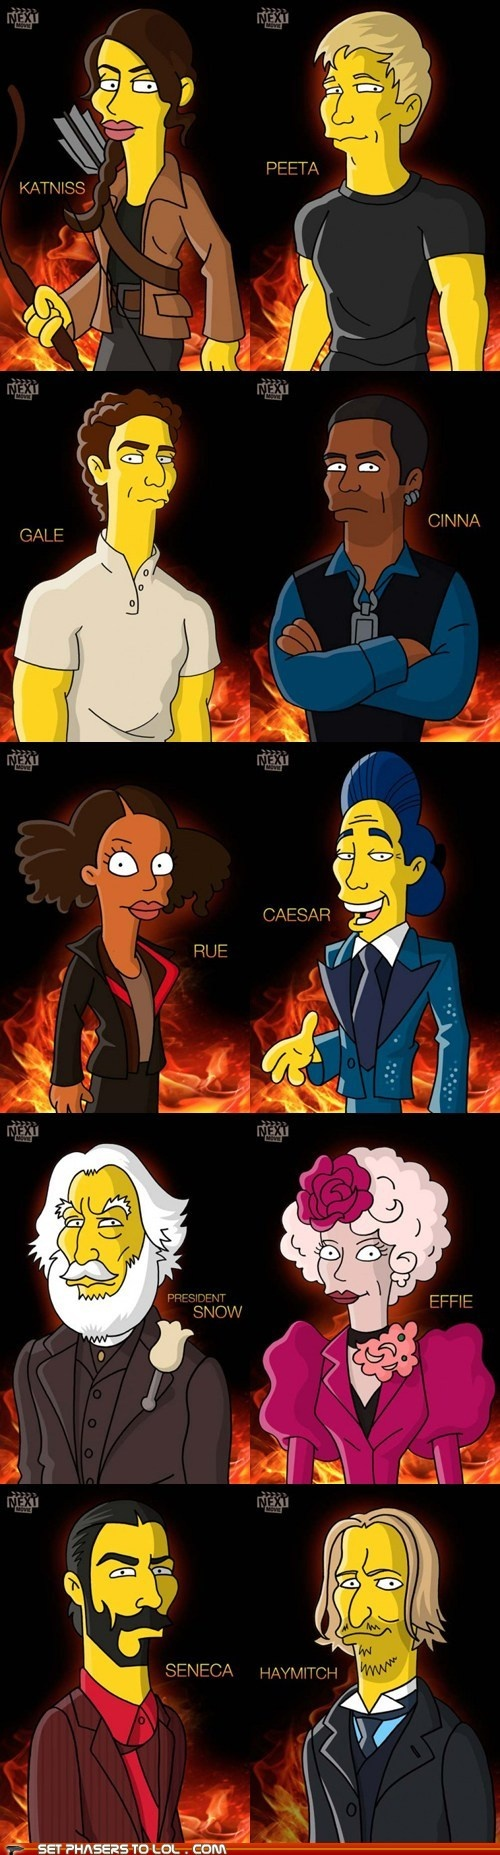 What pictures represent katniss everdeen yahoo answers - The Hunger Games Characters As Simpsons